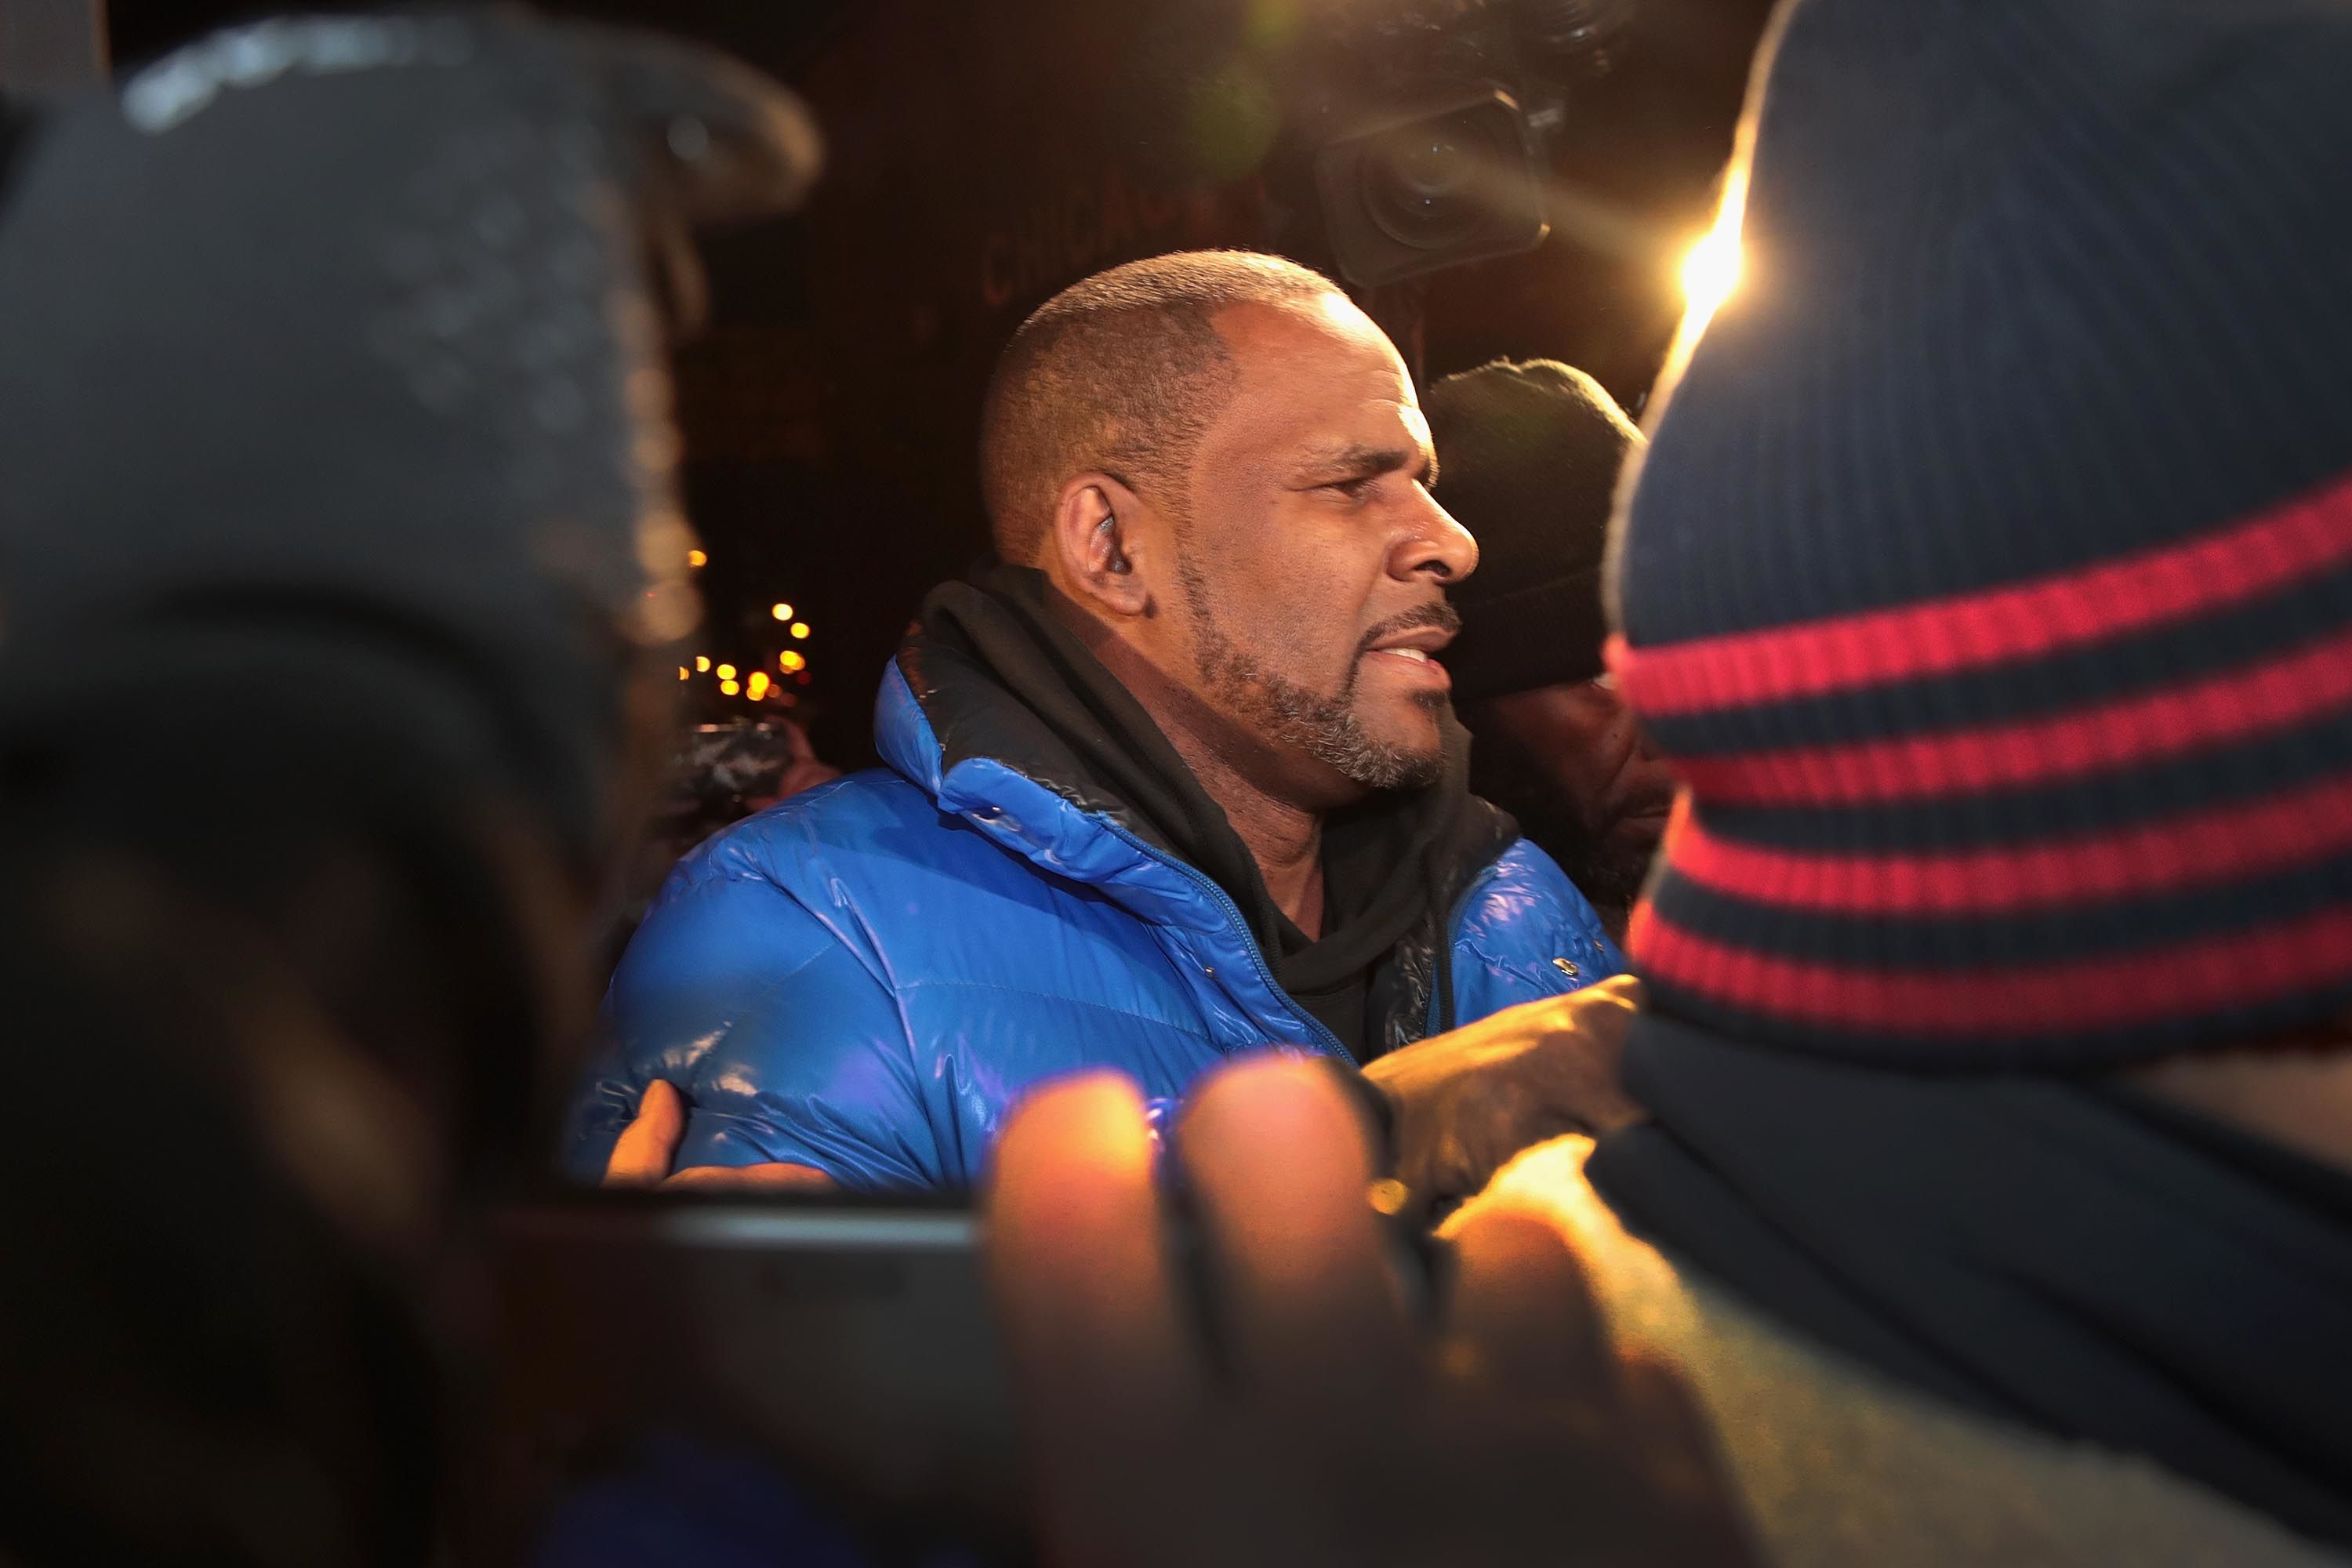 R. Kelly faces five counts for racketeering and child sex crimes